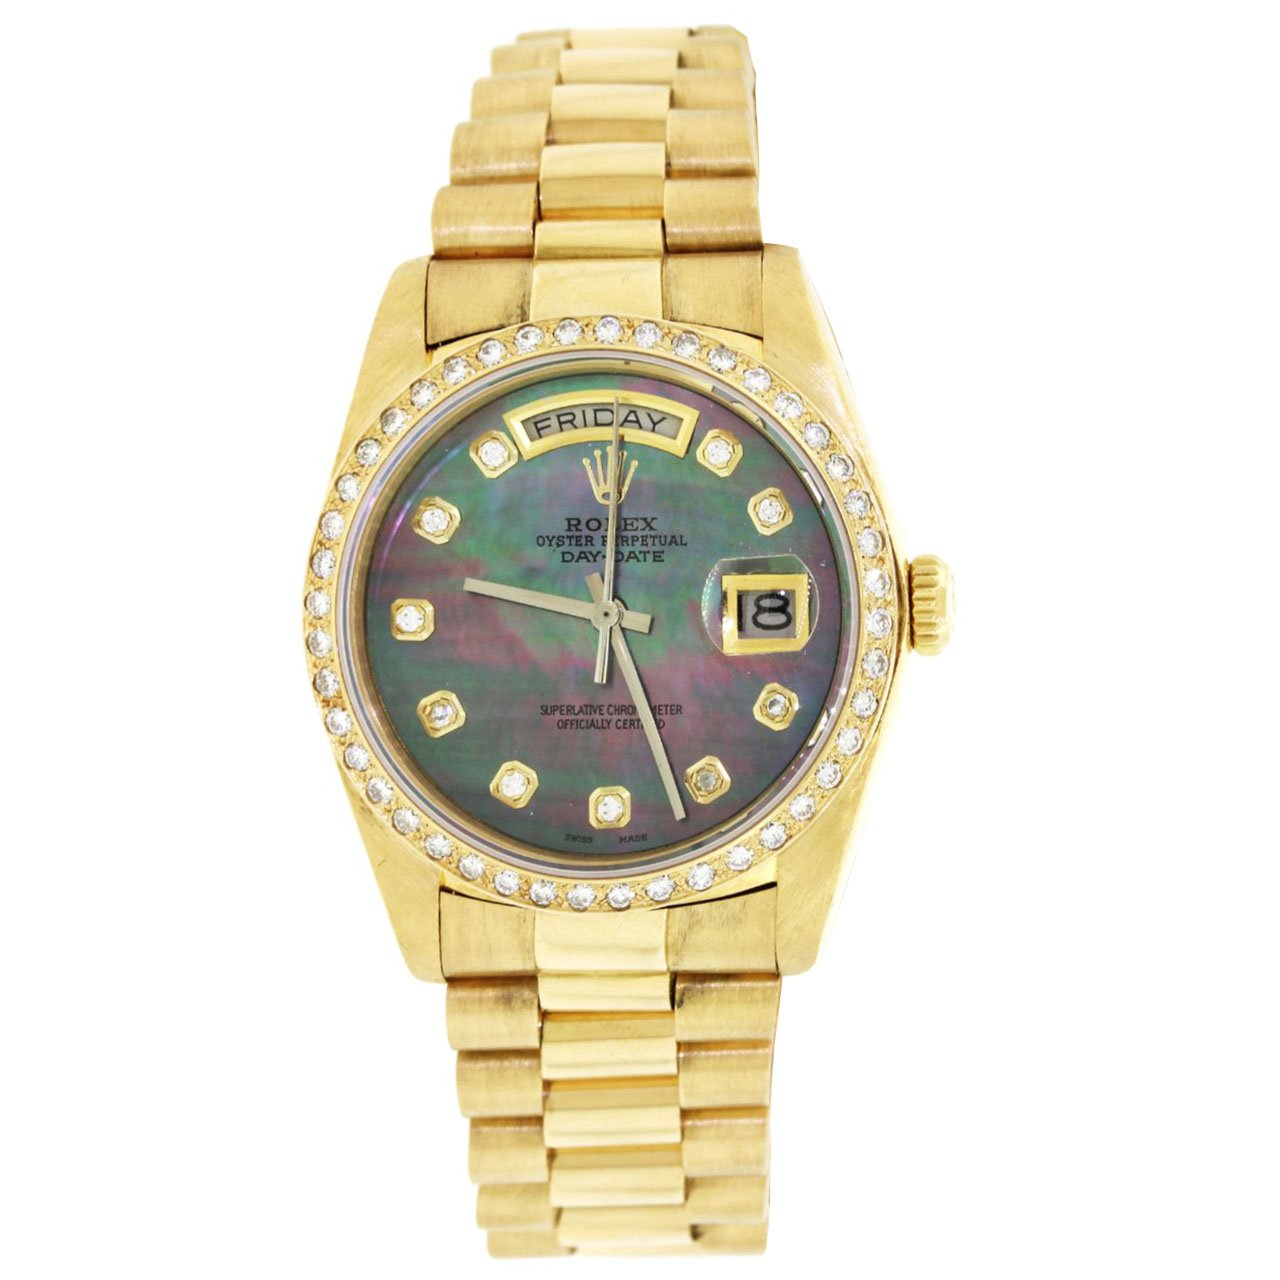 18K Yellow Gold Rolex Diamond Watch, Day Date President 36mm, Mother Of Pearl Diamond Dial With 1.75CT Diamond Bezel